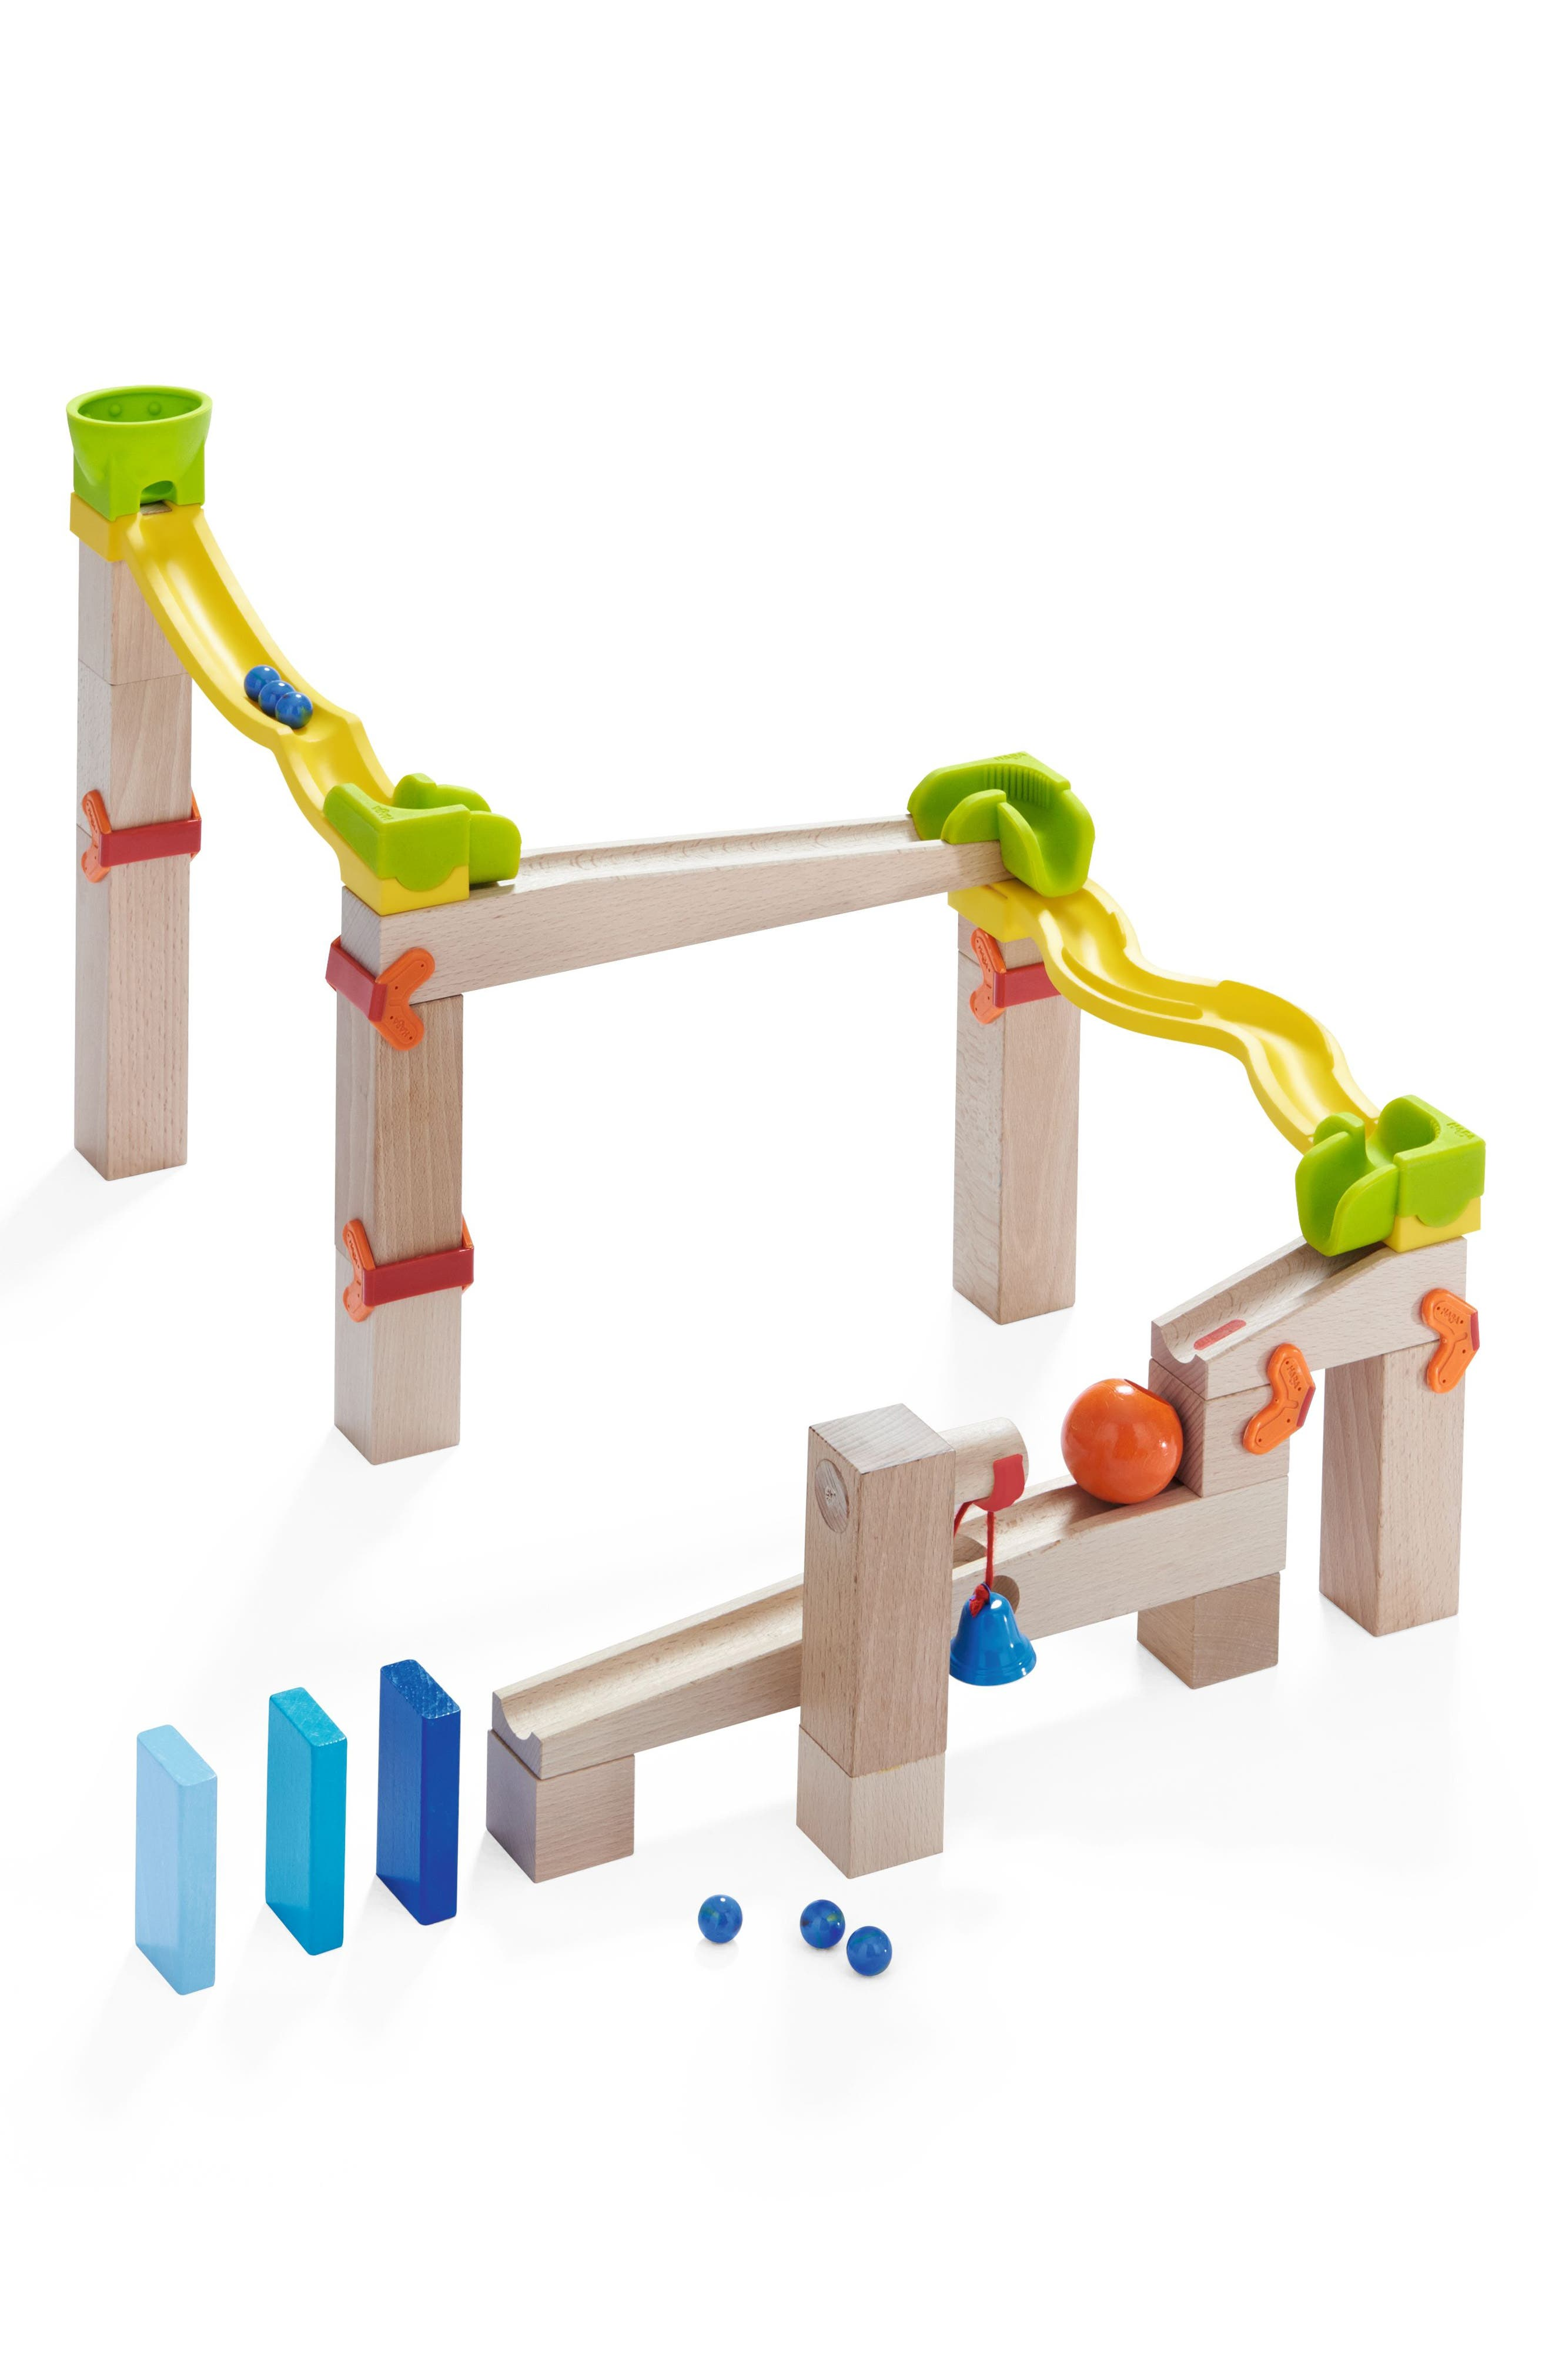 Main Image - HABA My First Ball Track 41-Piece Basic Pack Switch Track Play Set